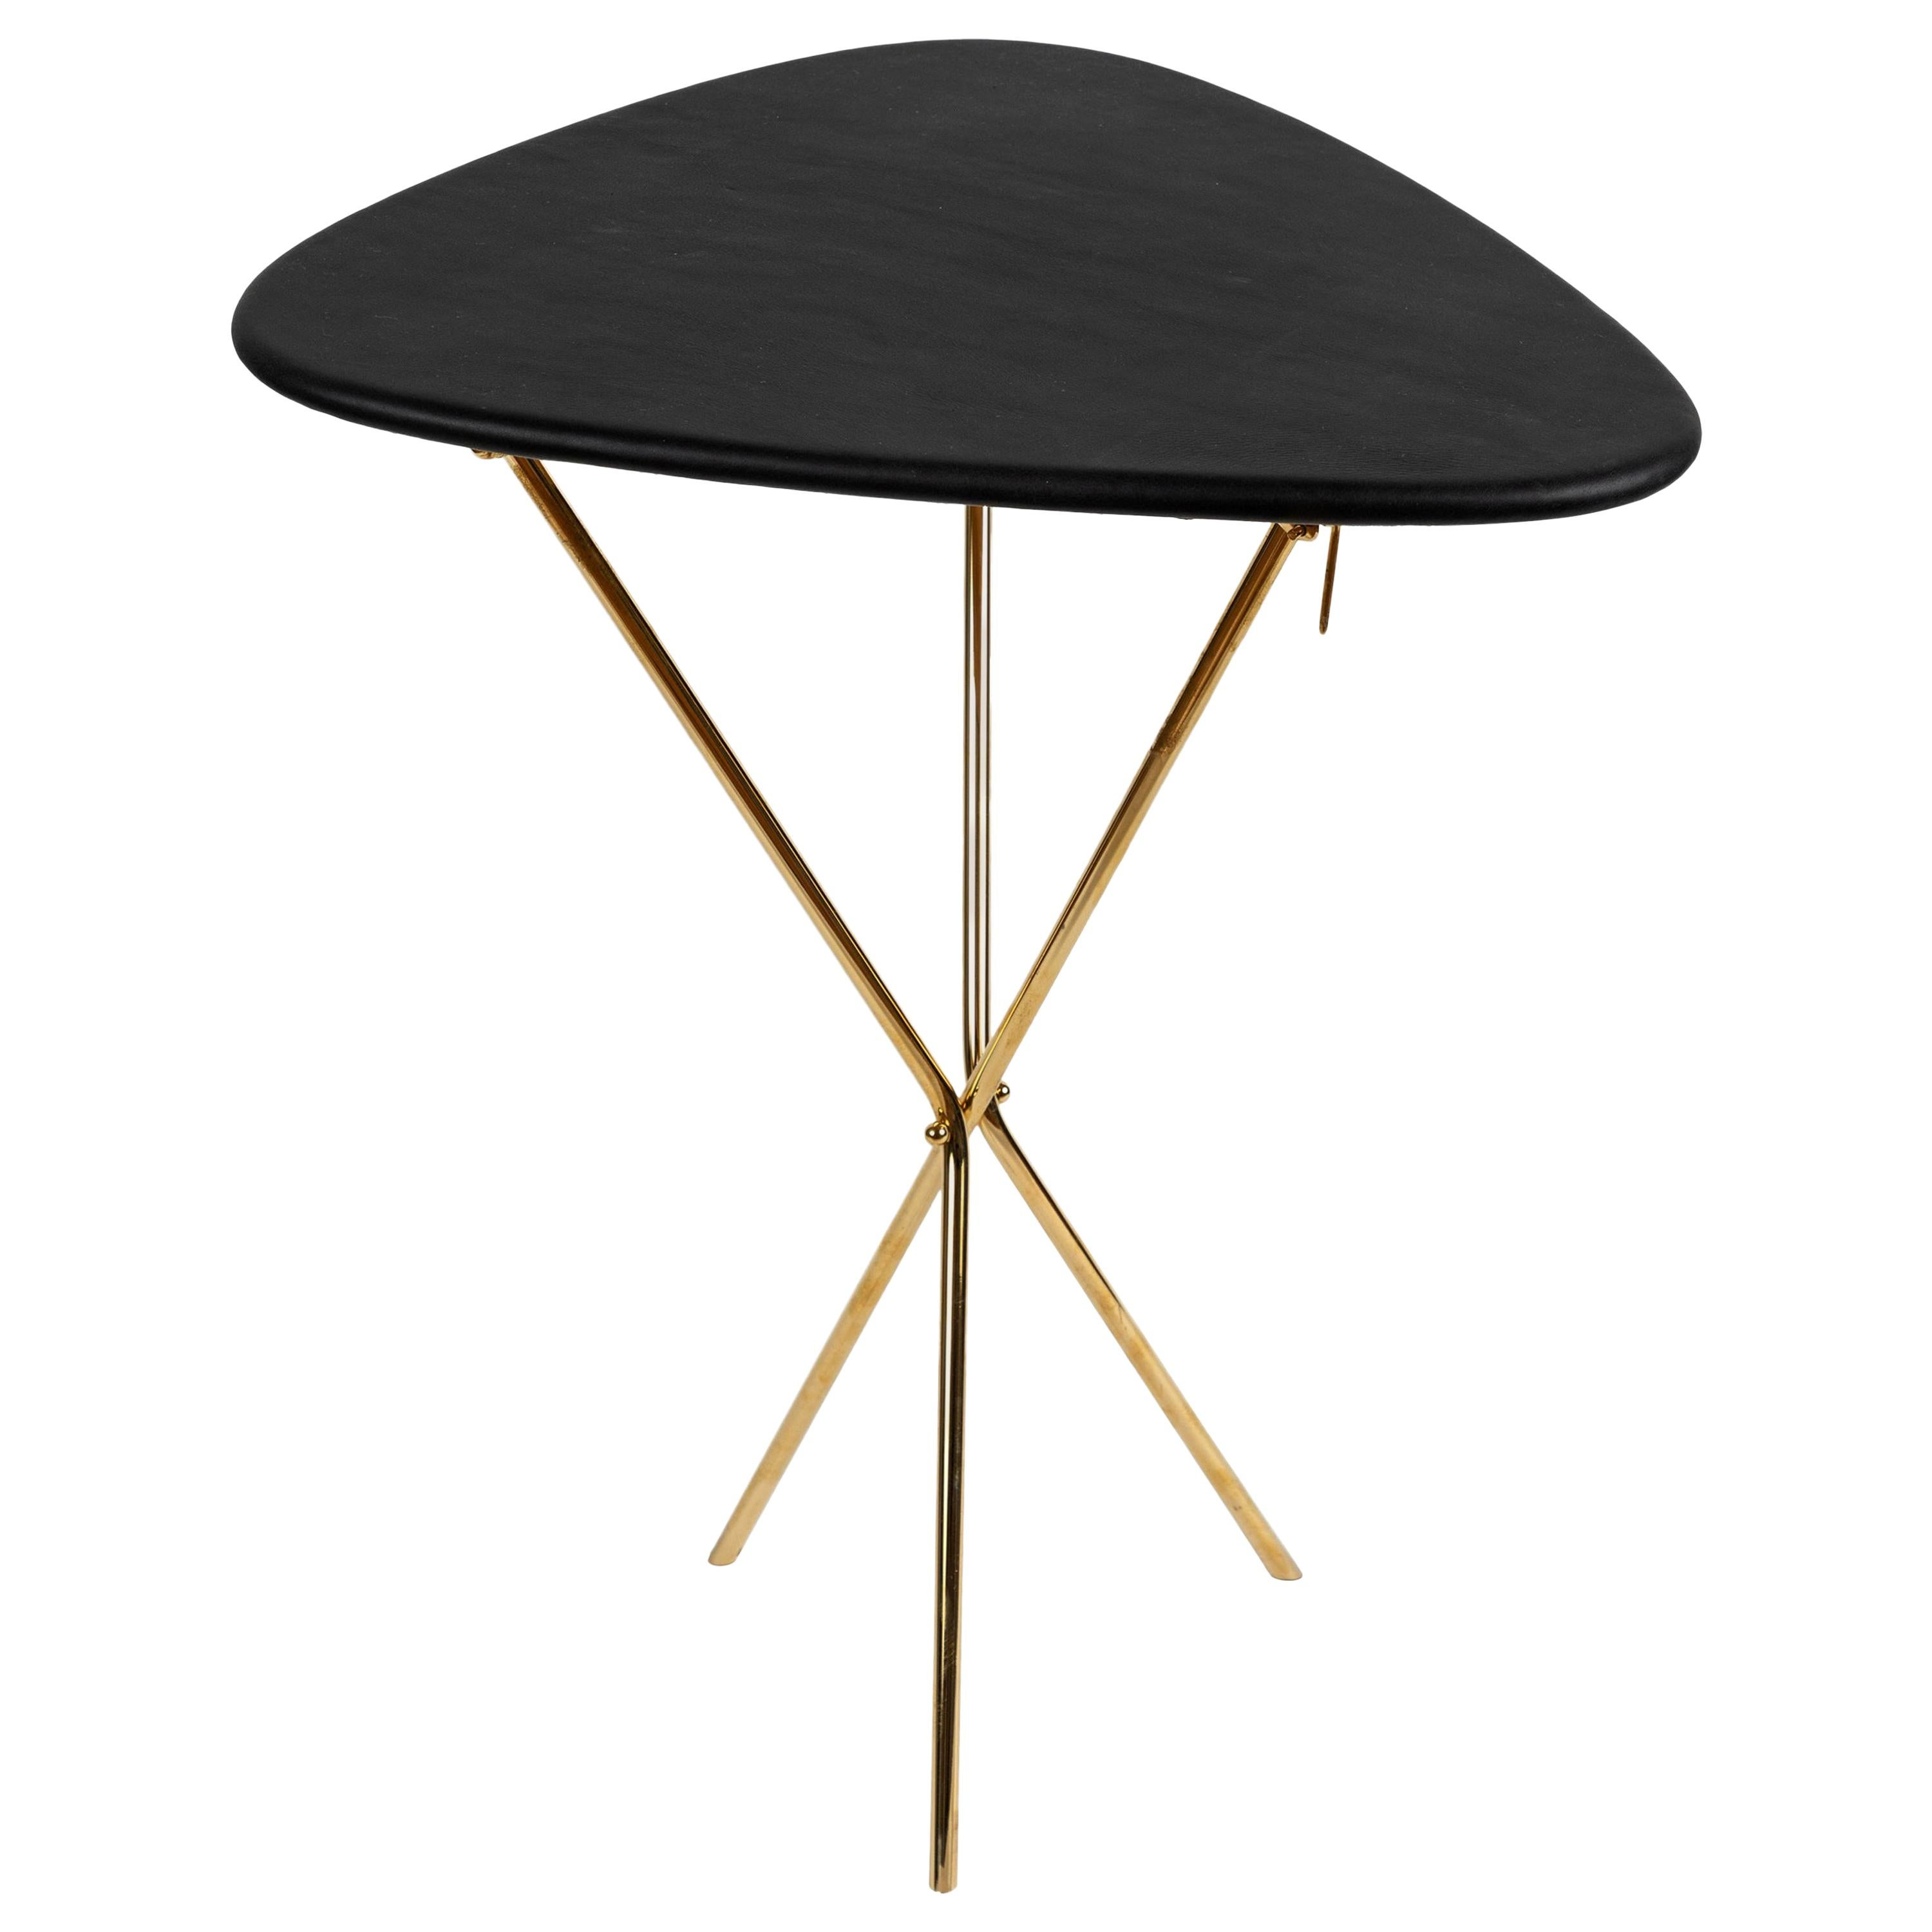 Carl Auböck Model #3642 Brass and Leather Table